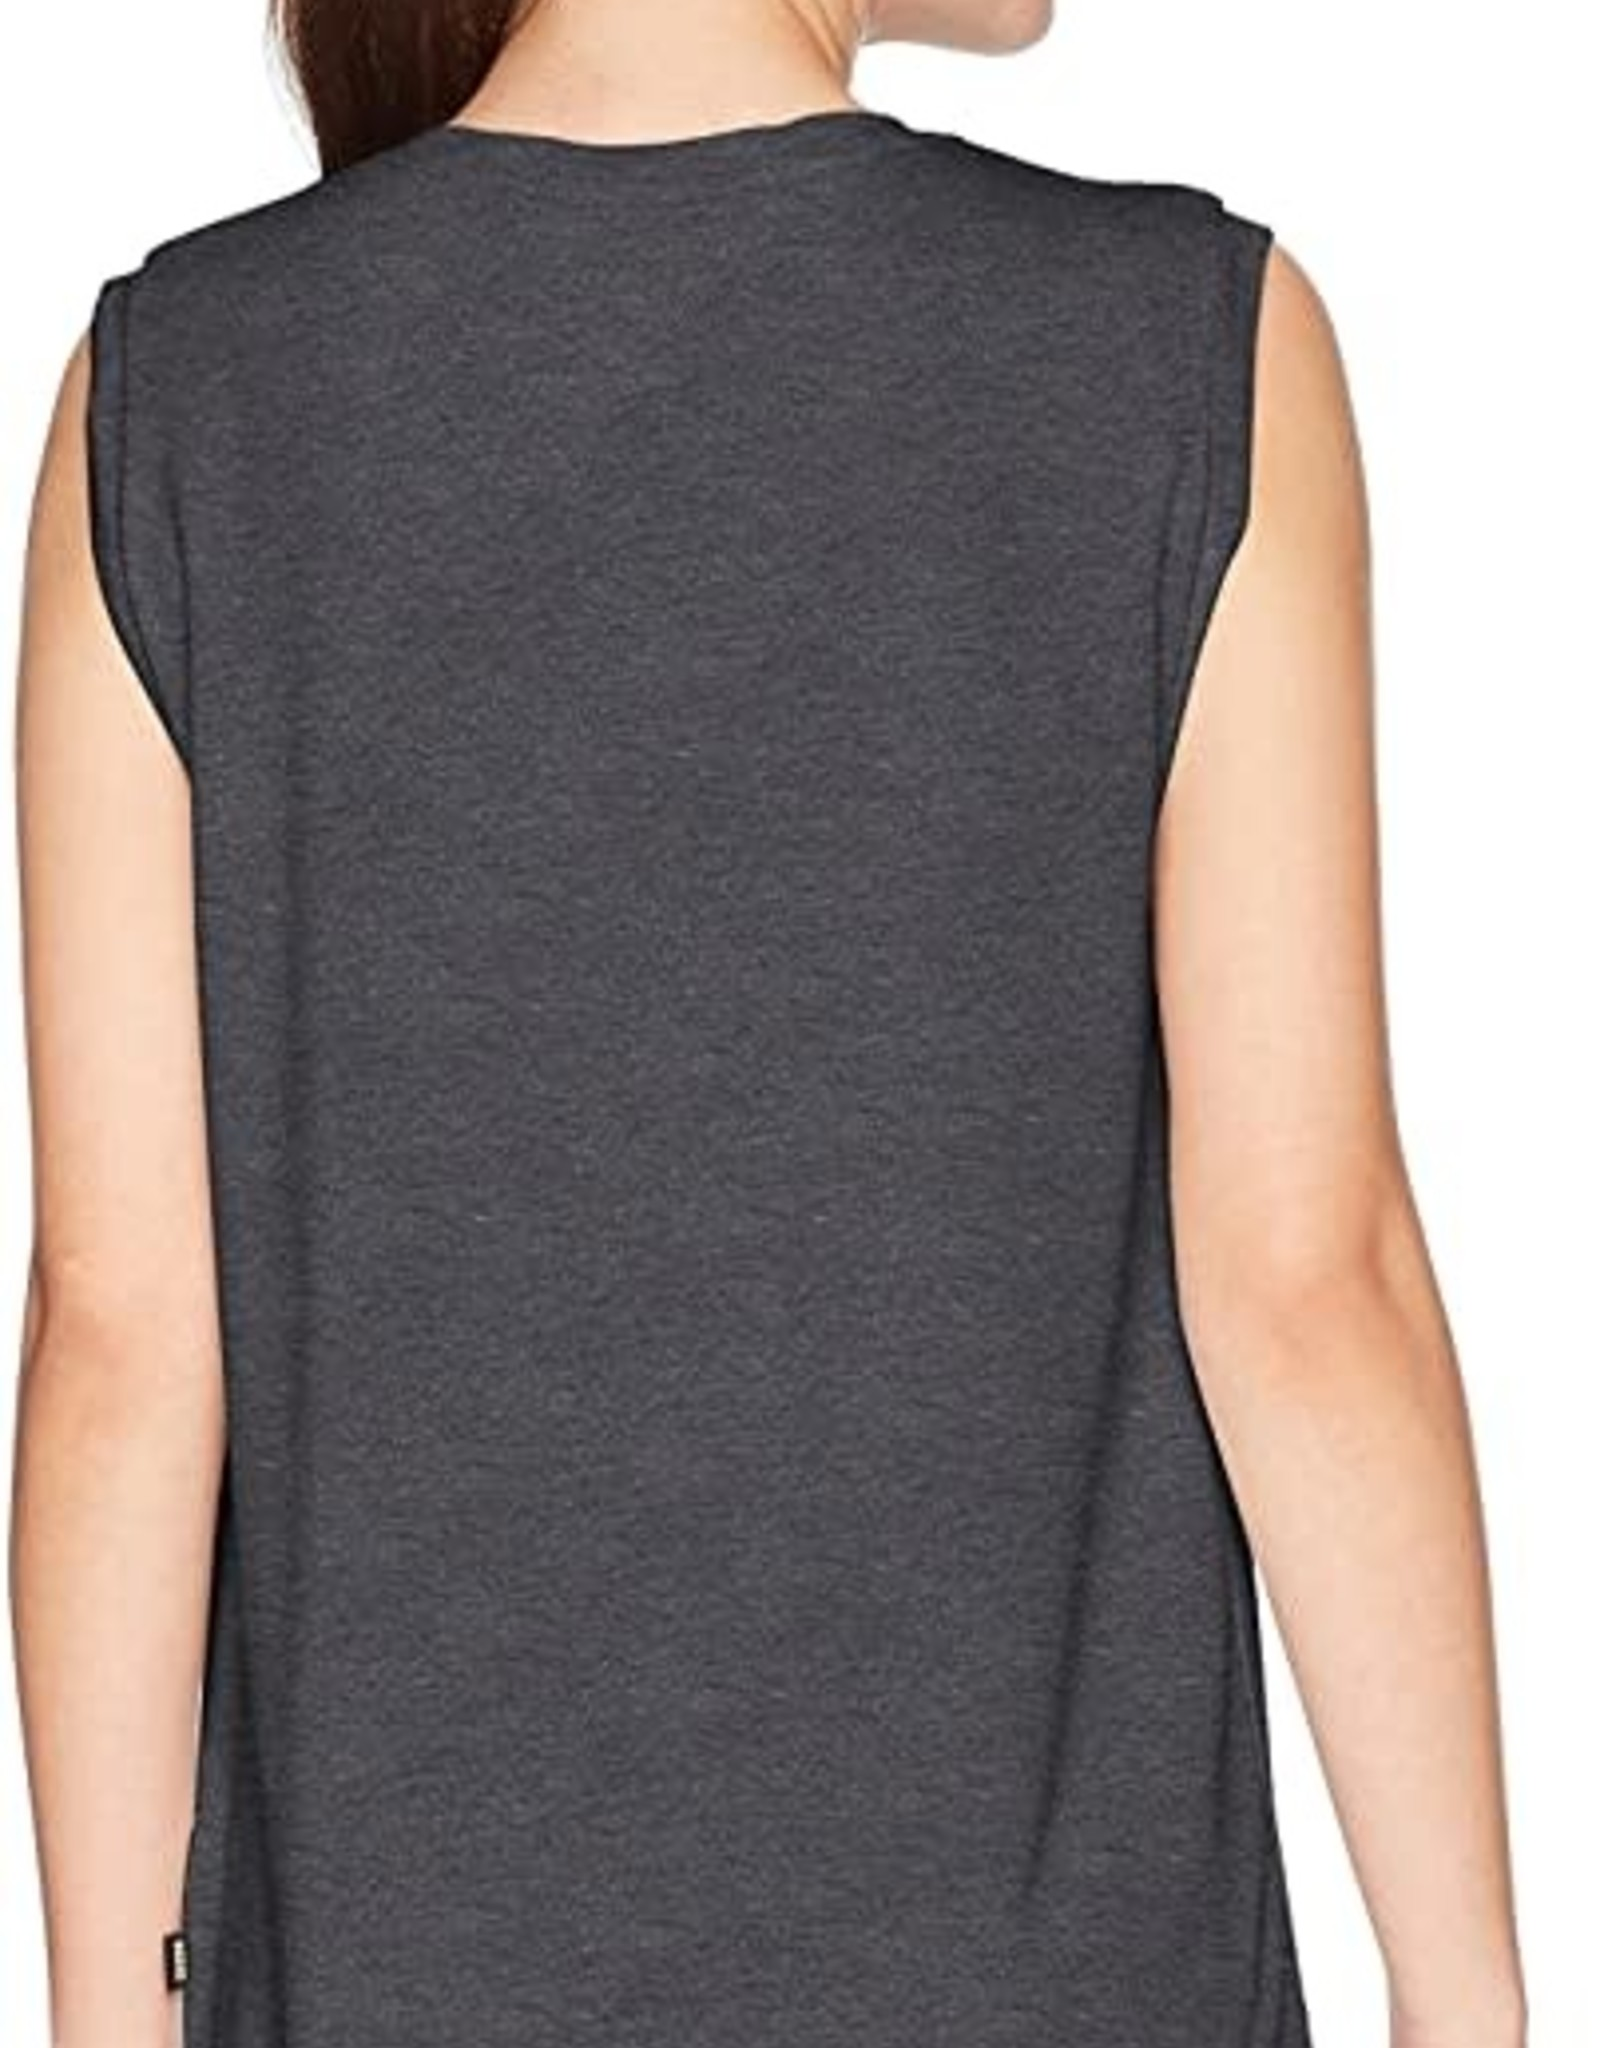 Orage Backscratcher tank top